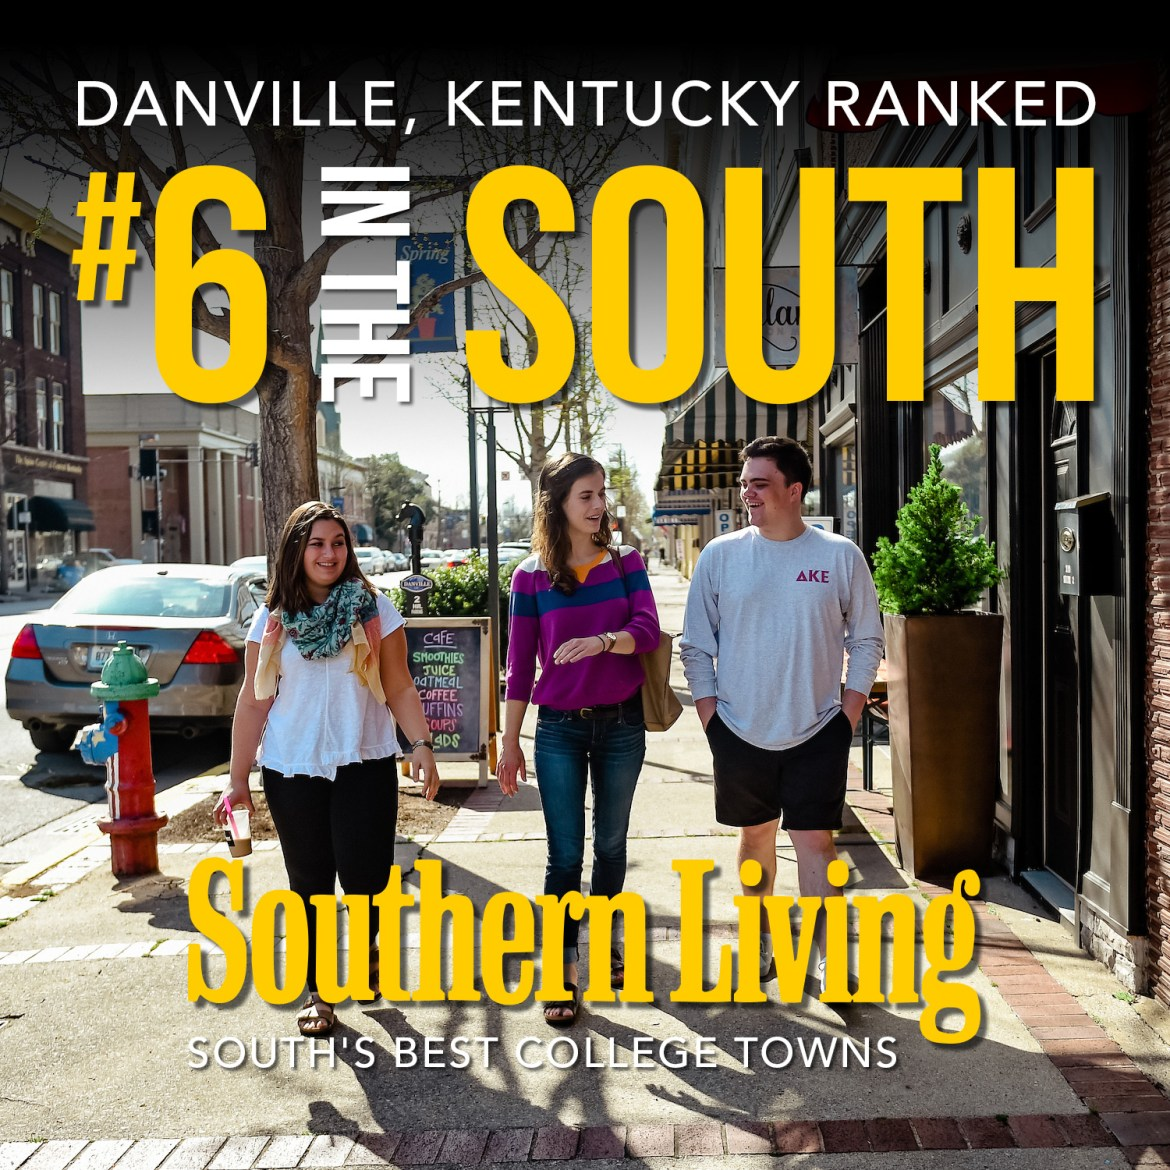 Southern Living ranks Danville #6 in the south